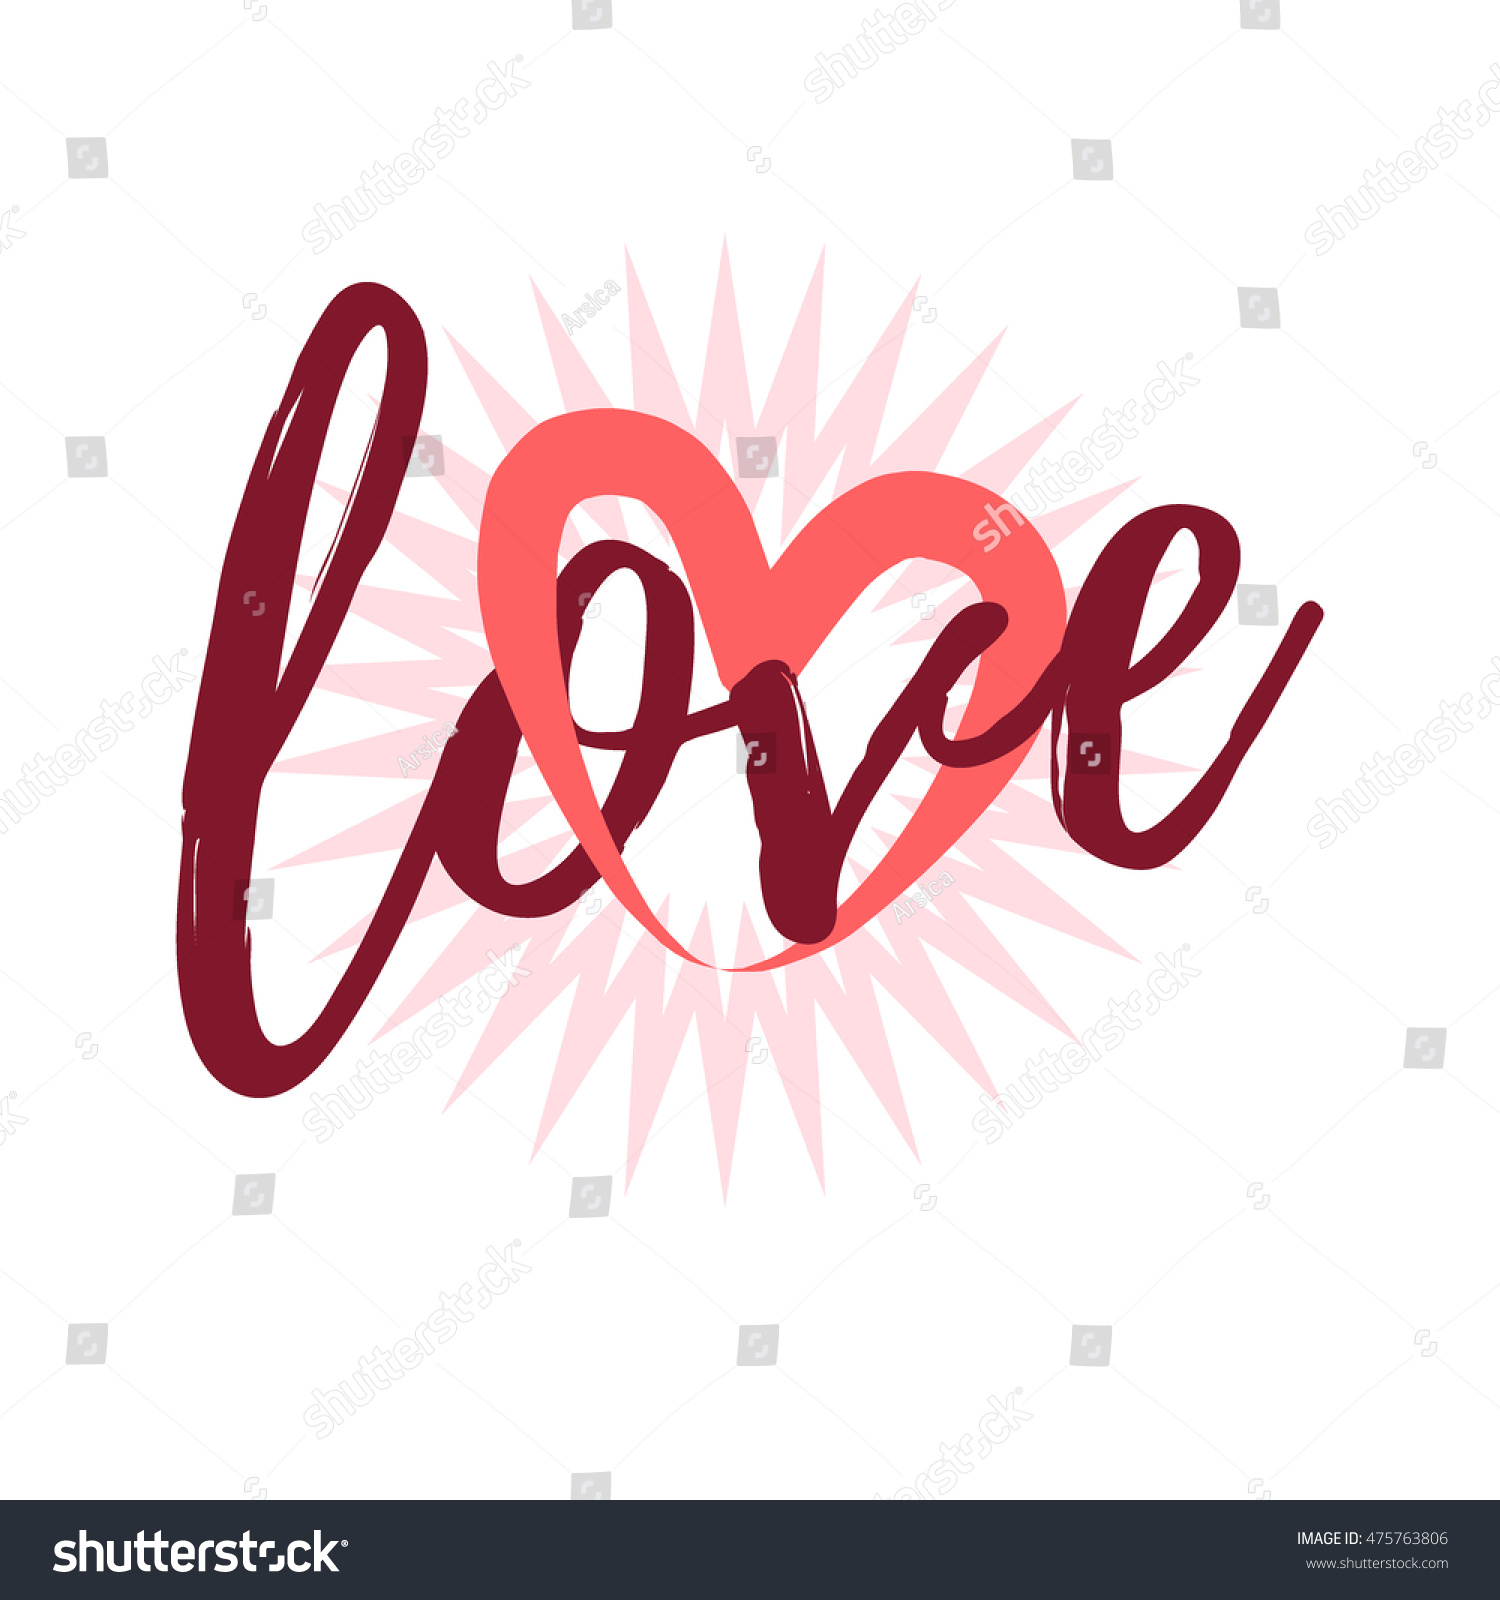 text love with heart vector love heart text for t shirt apparel